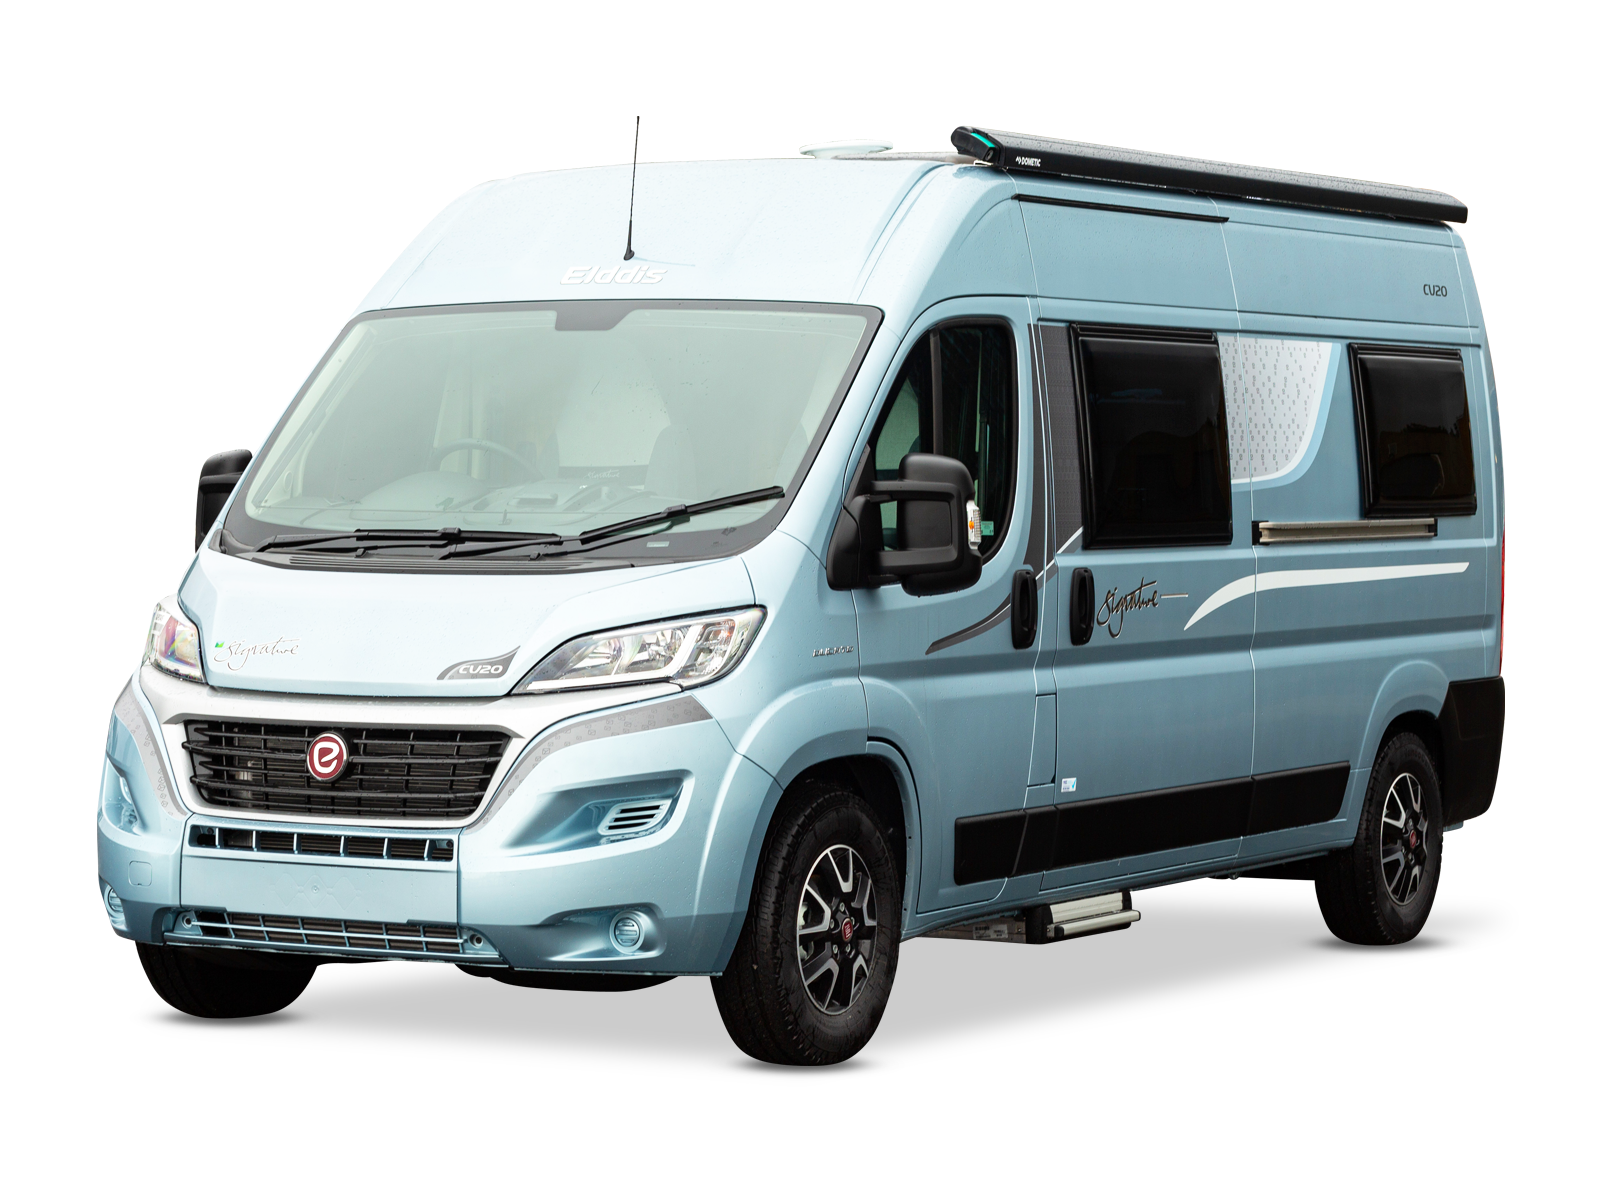 Signature Campervan by Elddis Exterior